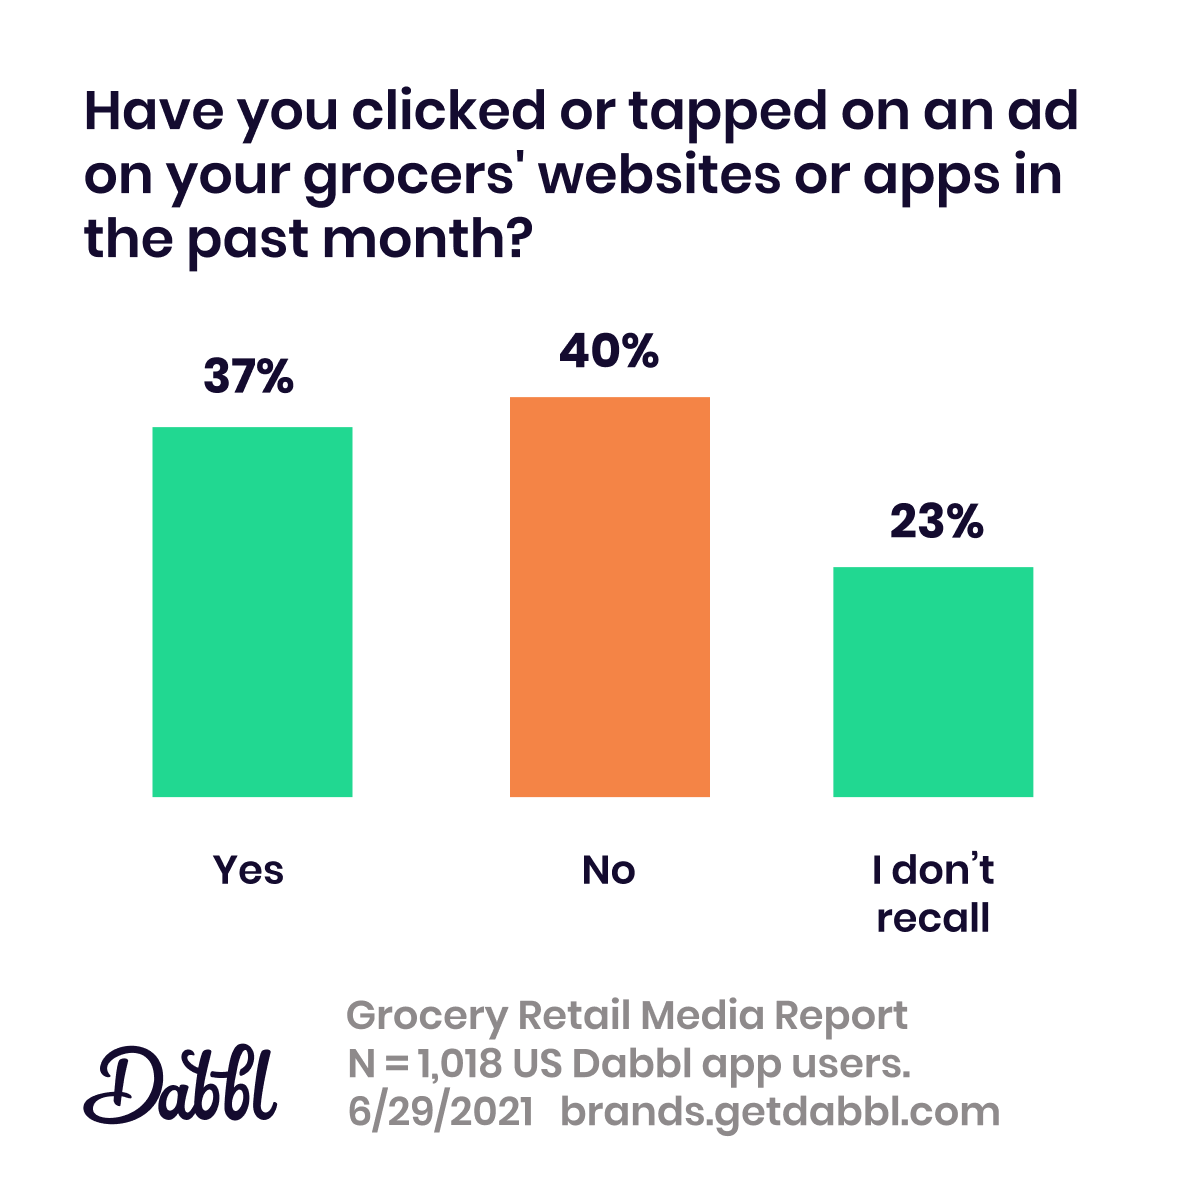 Dabbl Grocery Retail Media Report: retail media ad engagement